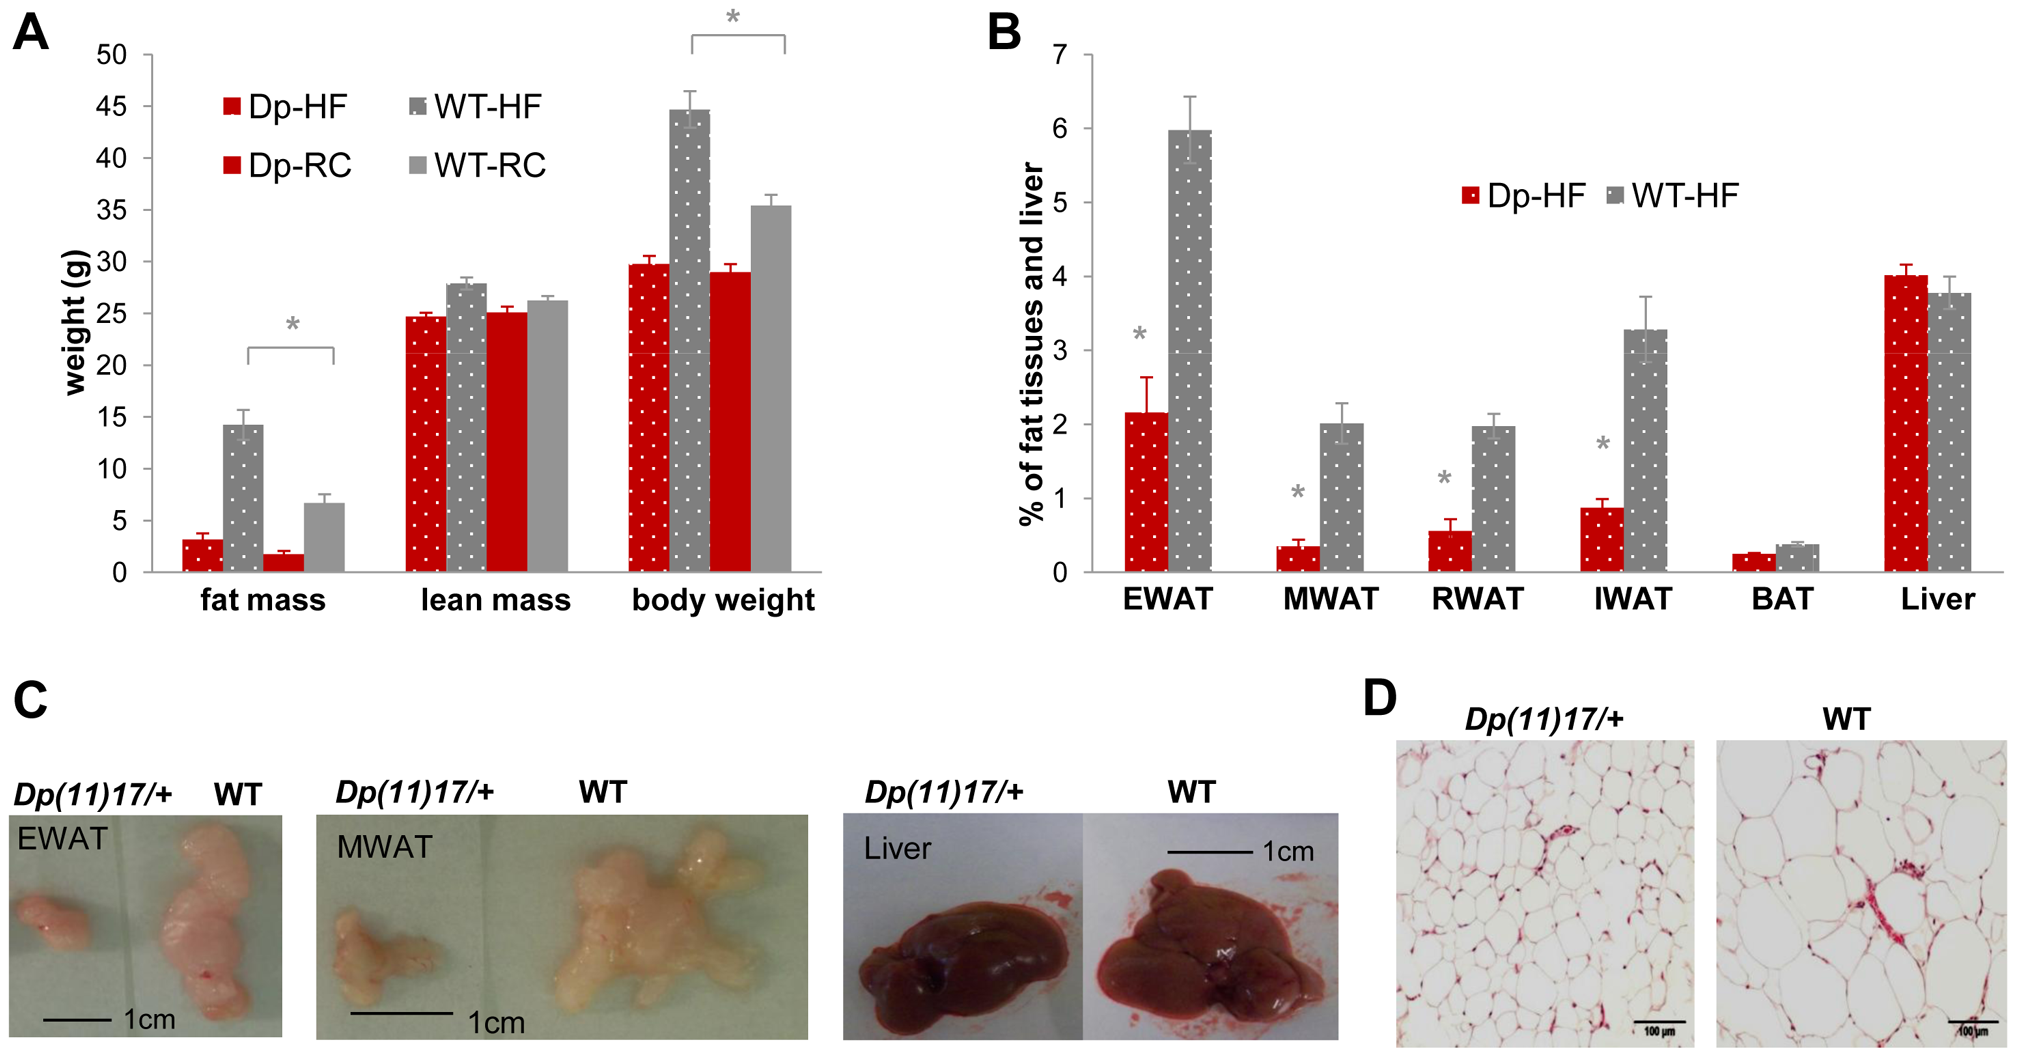 <i>Dp(11)17/+</i> mice (red) display resistance to diet-induced obesity compared to WT littermates (gray) after a high-fat diet (HF) feeding from 19 to 22 weeks.